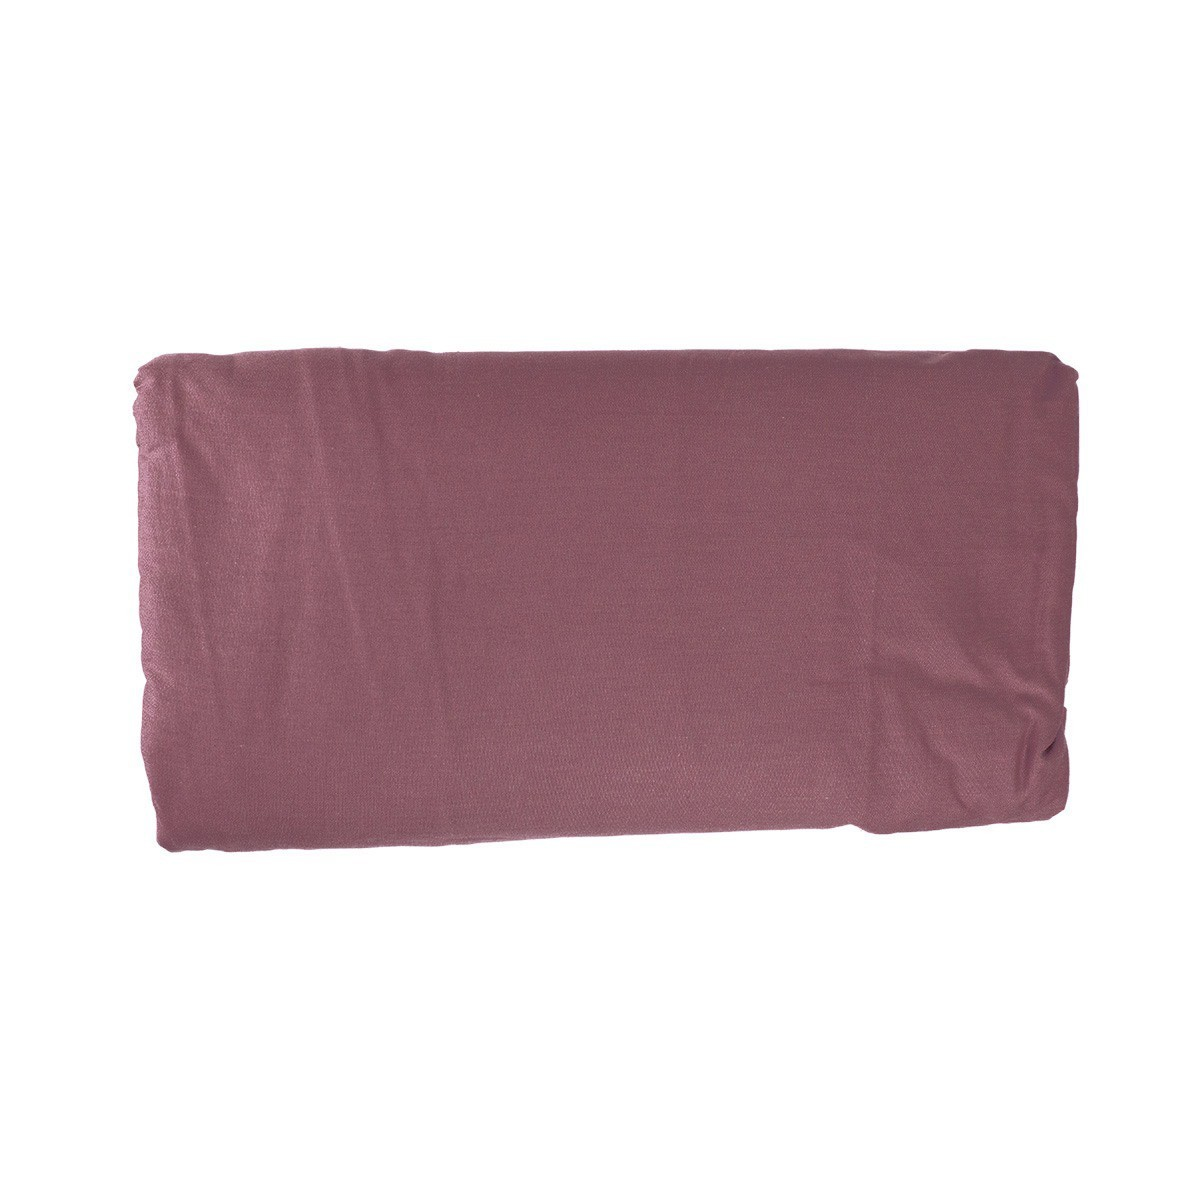 drap housse 90x190 percale 78 fils bonnet de 25cm violet les douces nuits de ma linge de maison. Black Bedroom Furniture Sets. Home Design Ideas